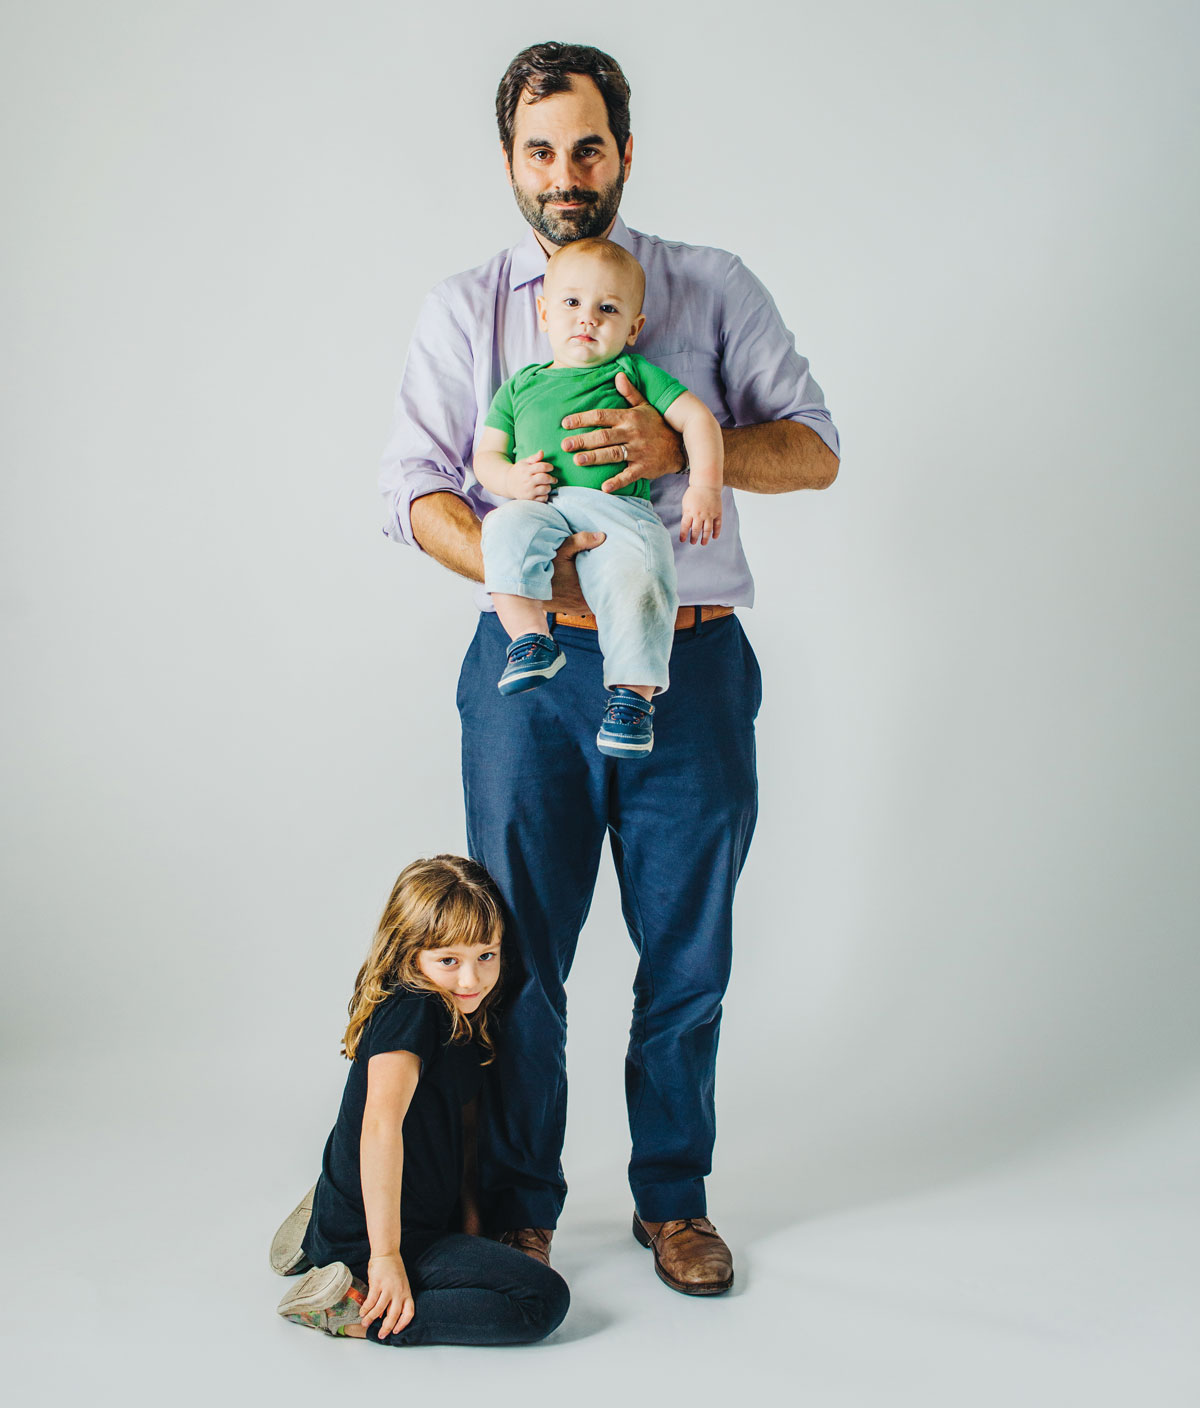 Frank standing against a white background with his two kids, Jonah and Madeline